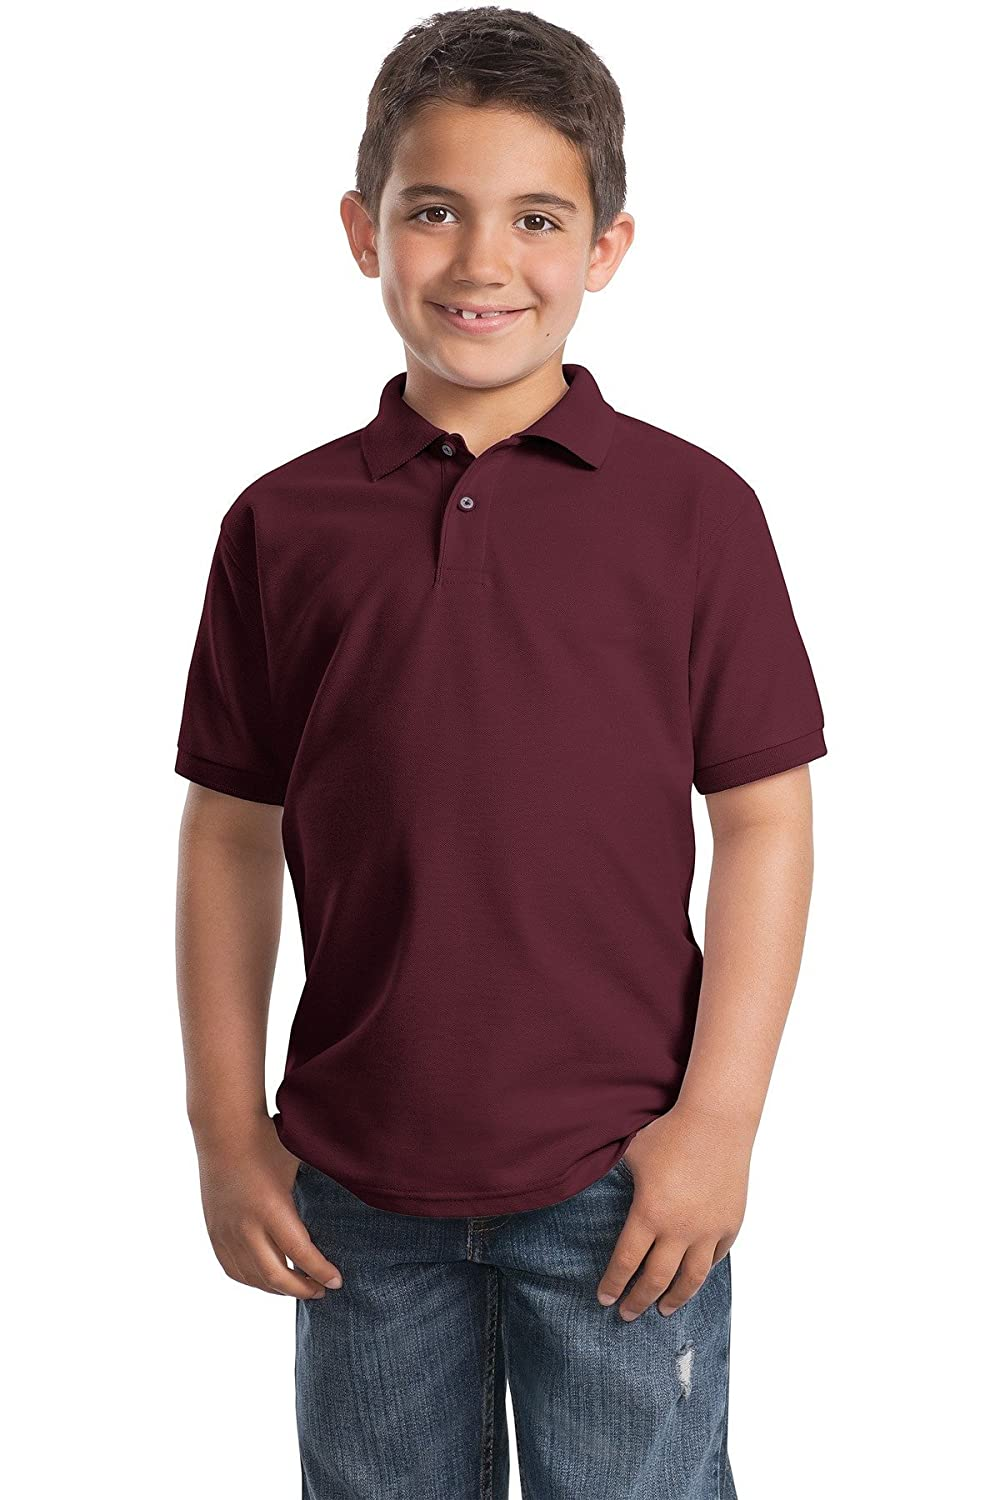 Port Authority Youth Silk Touch Polo Y500 Burgundy XS